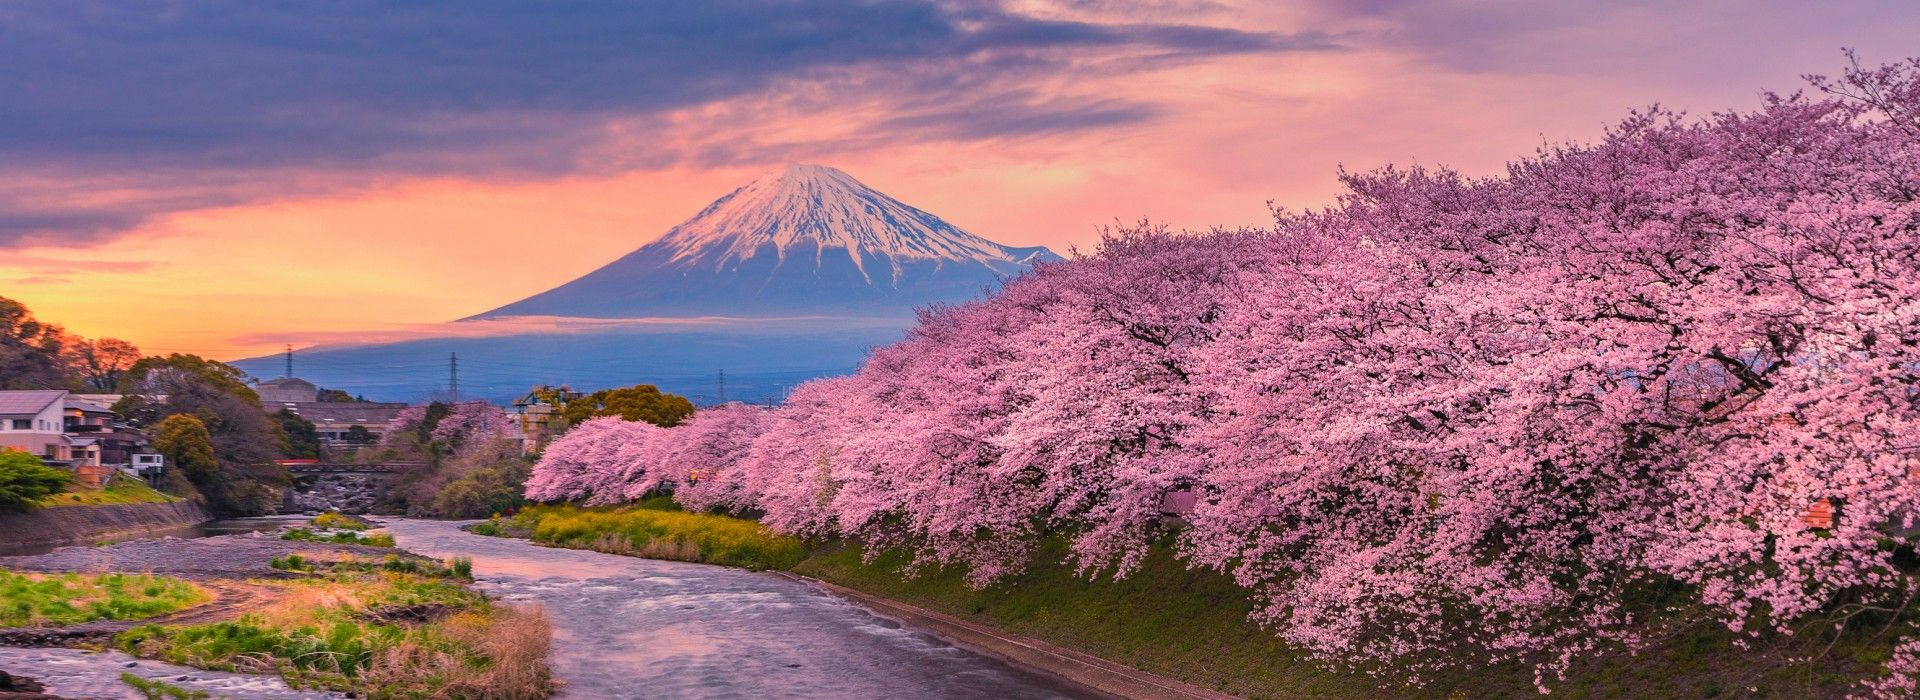 Adventure Tours in Japan